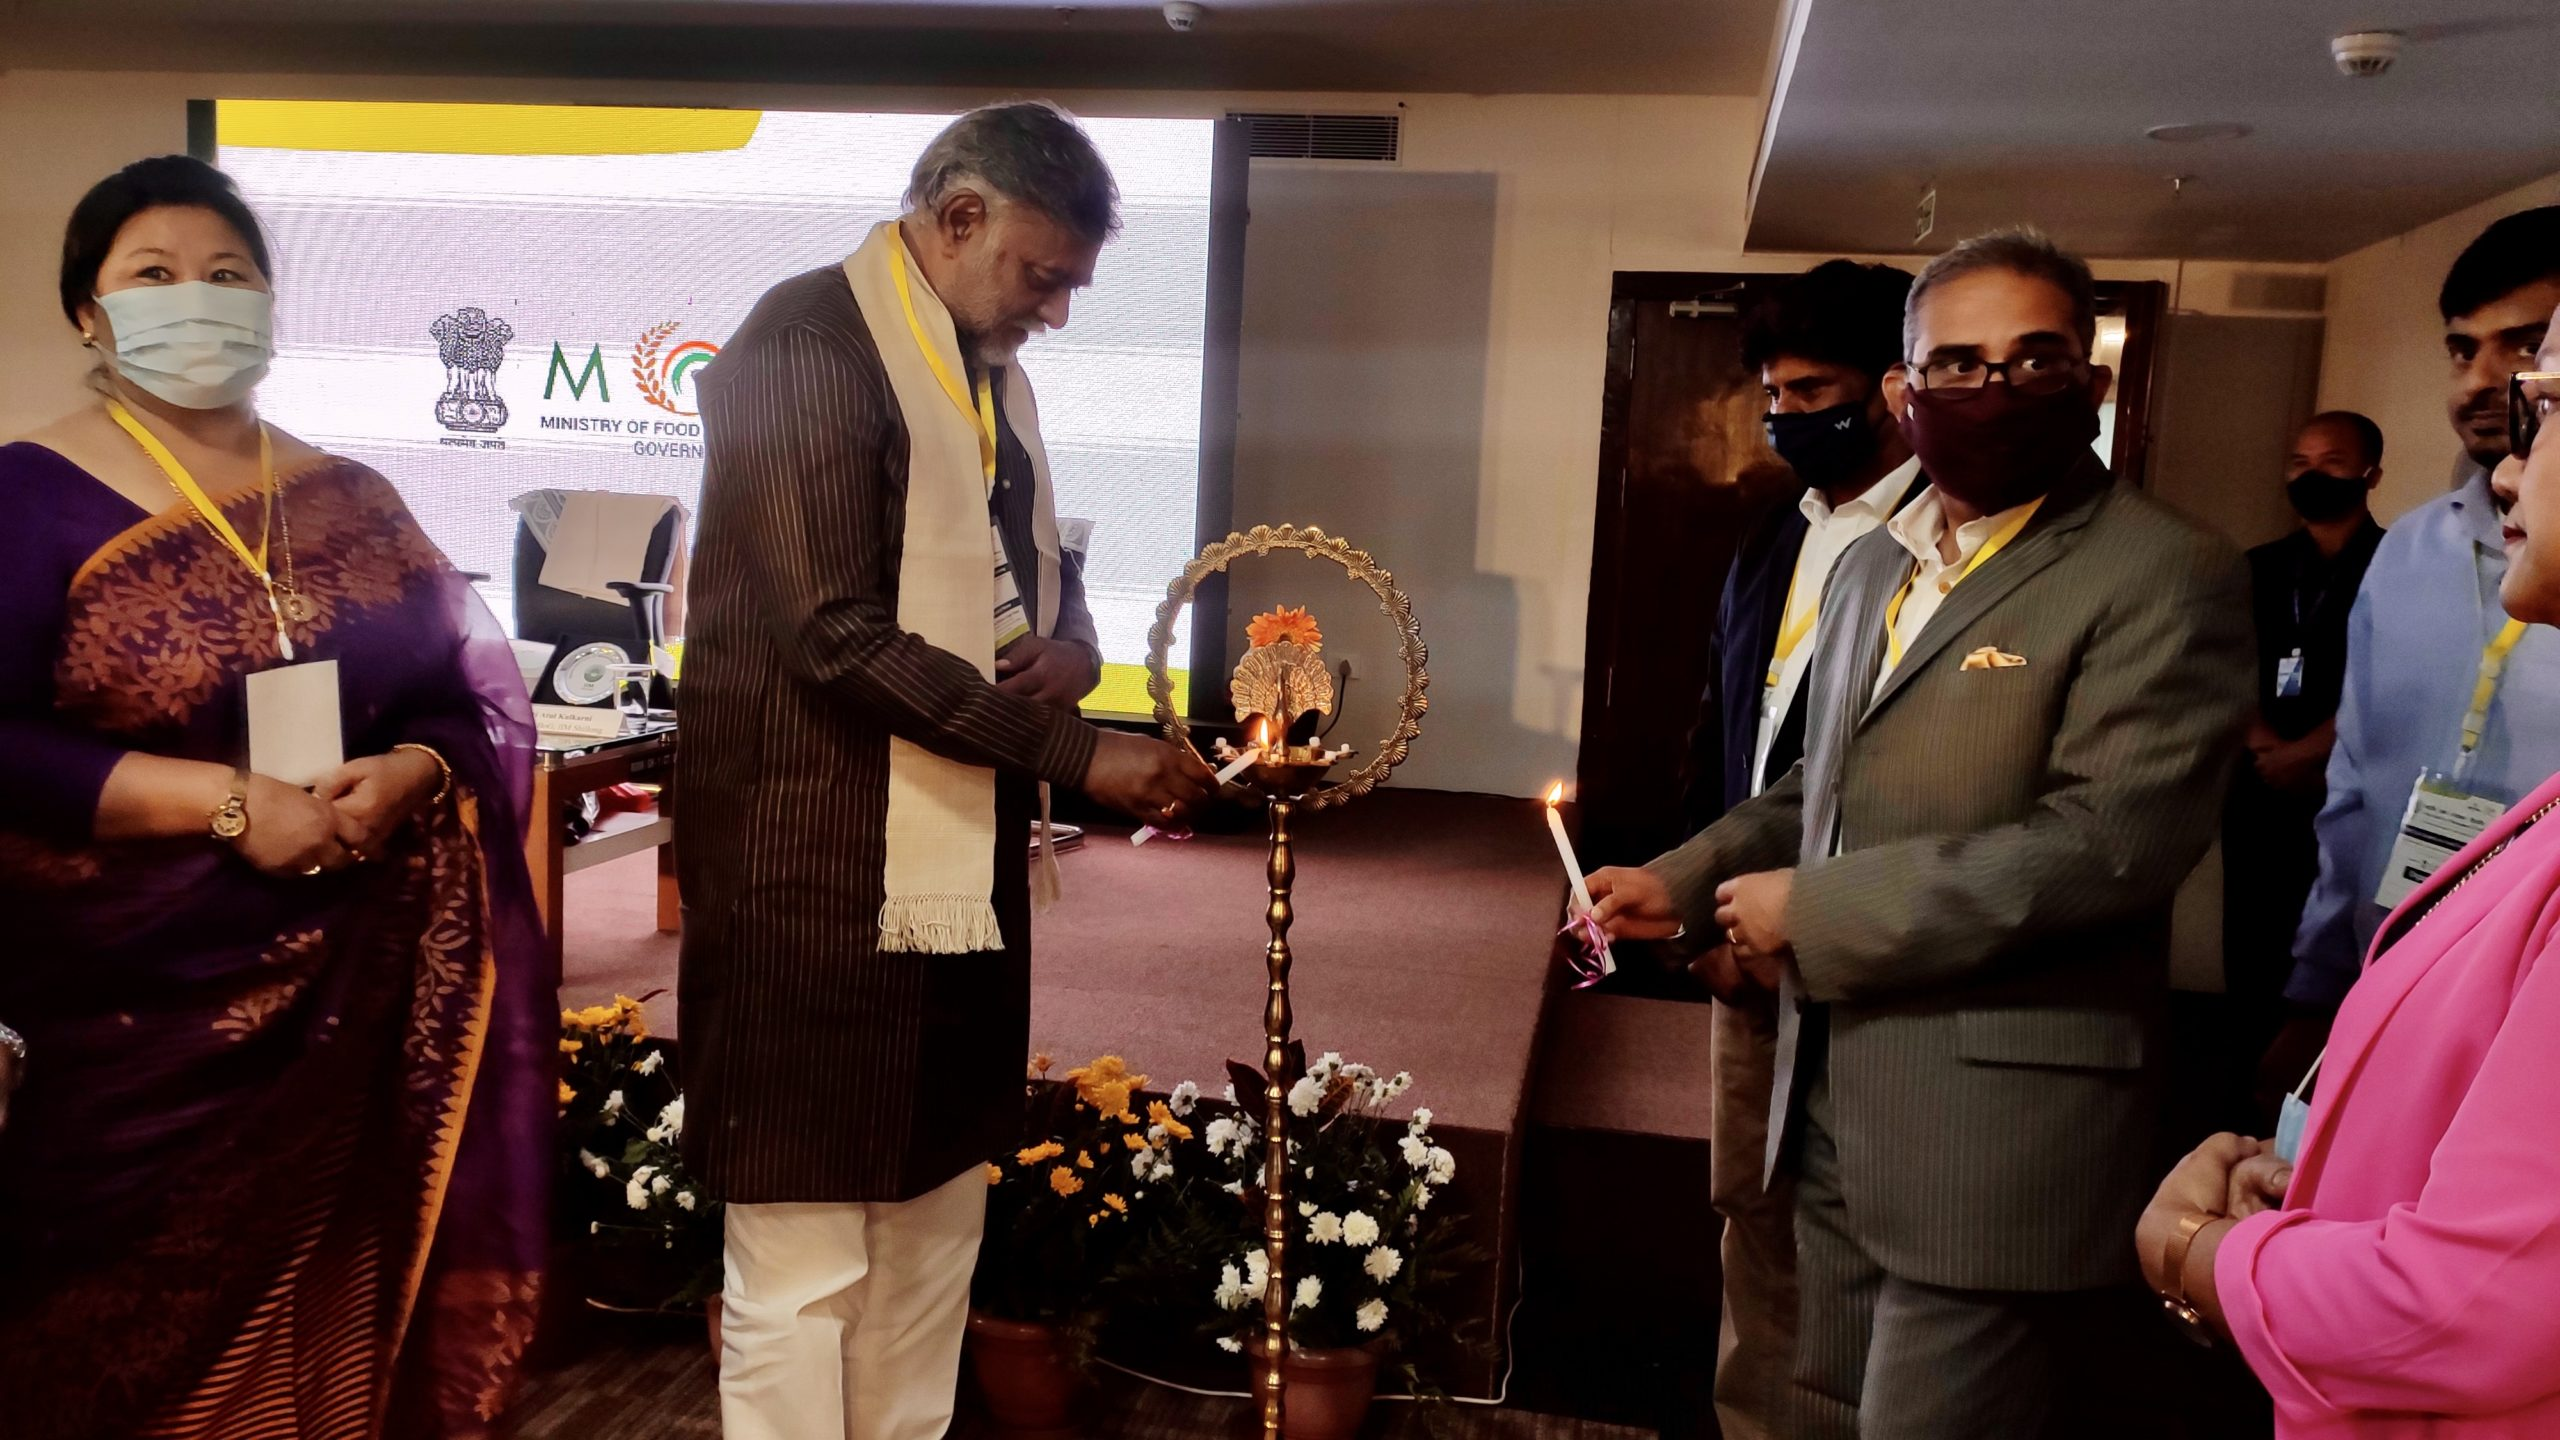 Union Minister of State for Food Processing Industries Shri Prahlad Singh Patel Inaugurates two-day North East Summit on Food Processing Industries at IIM Shillong